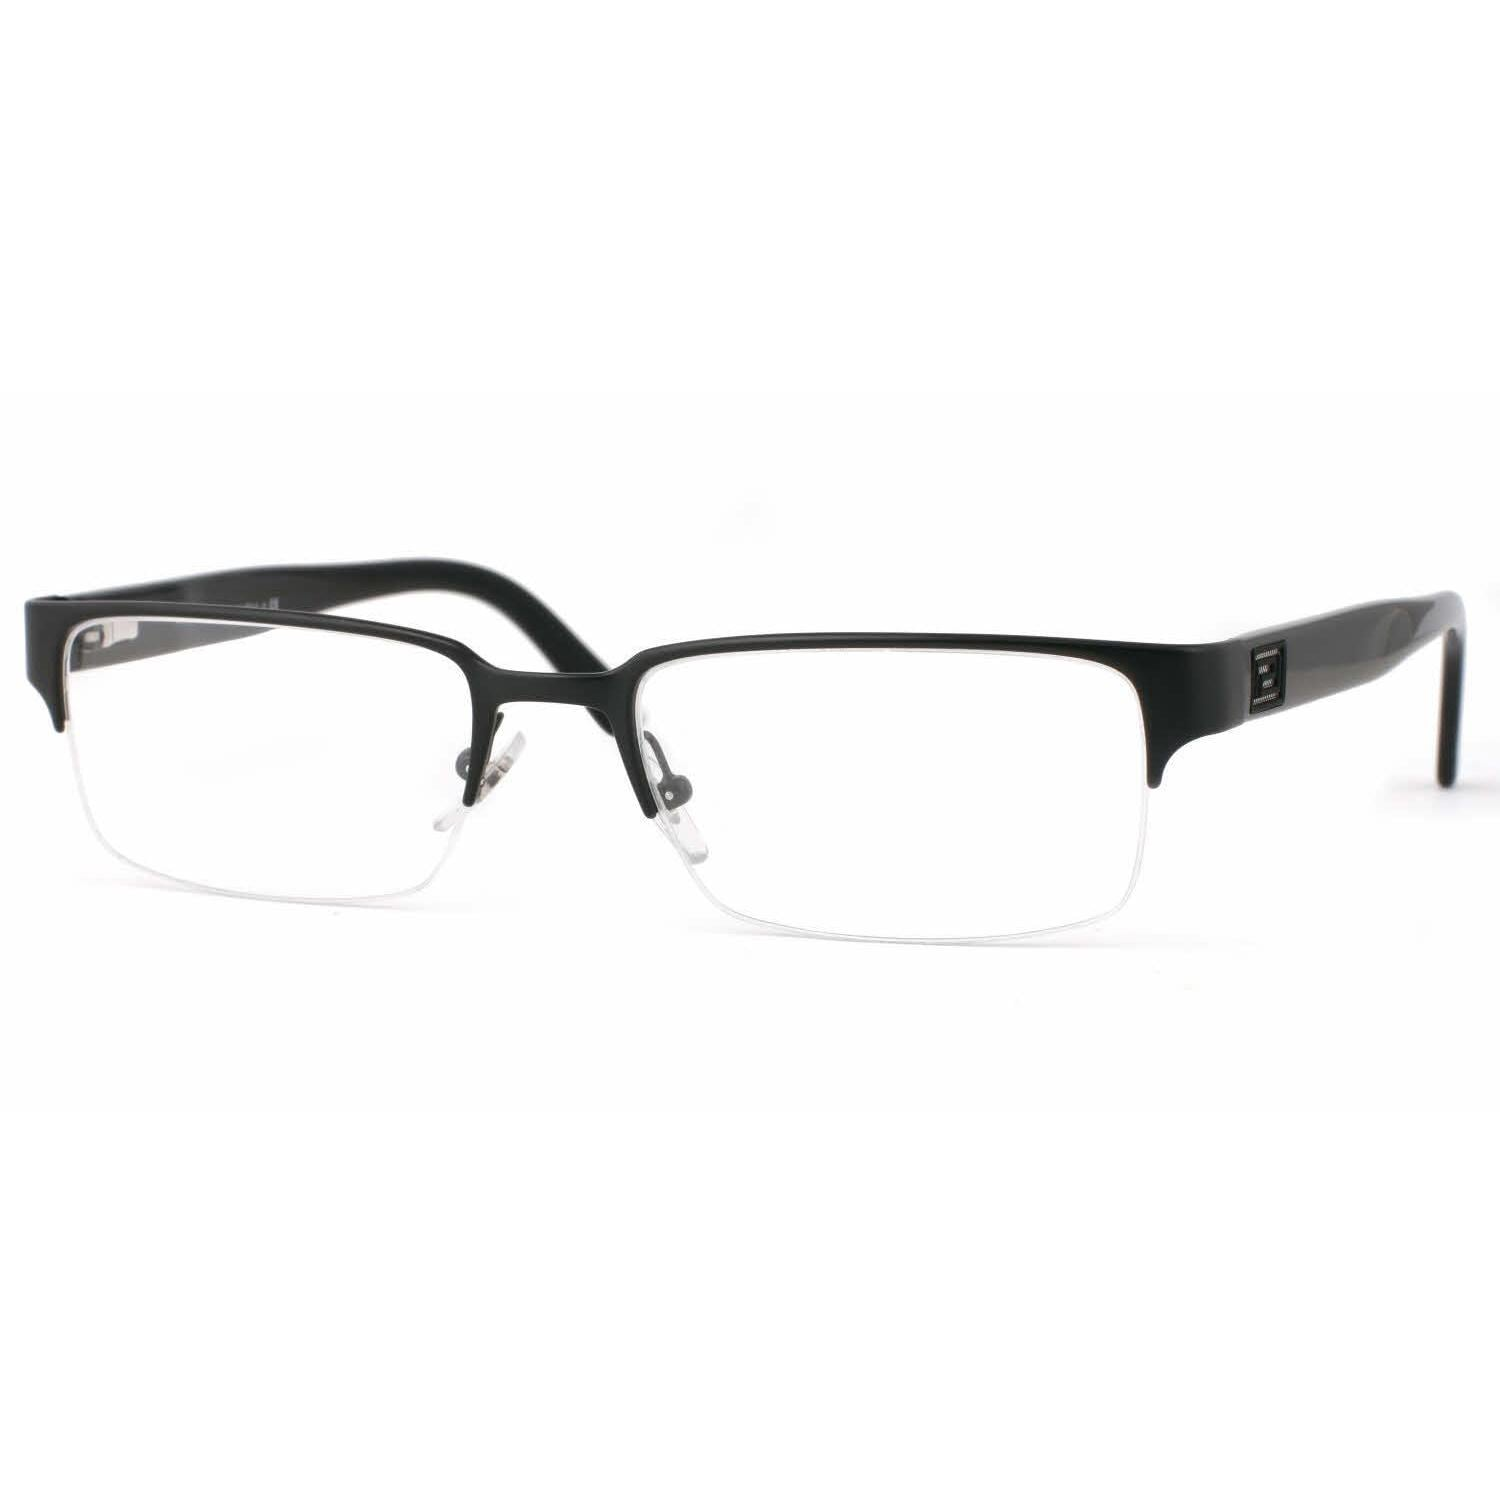 4f706260d0a2a Shop Versace Mens VE1184 1261 Black Metal Rectangle Eyeglasses - Free  Shipping Today - Overstock - 13614532